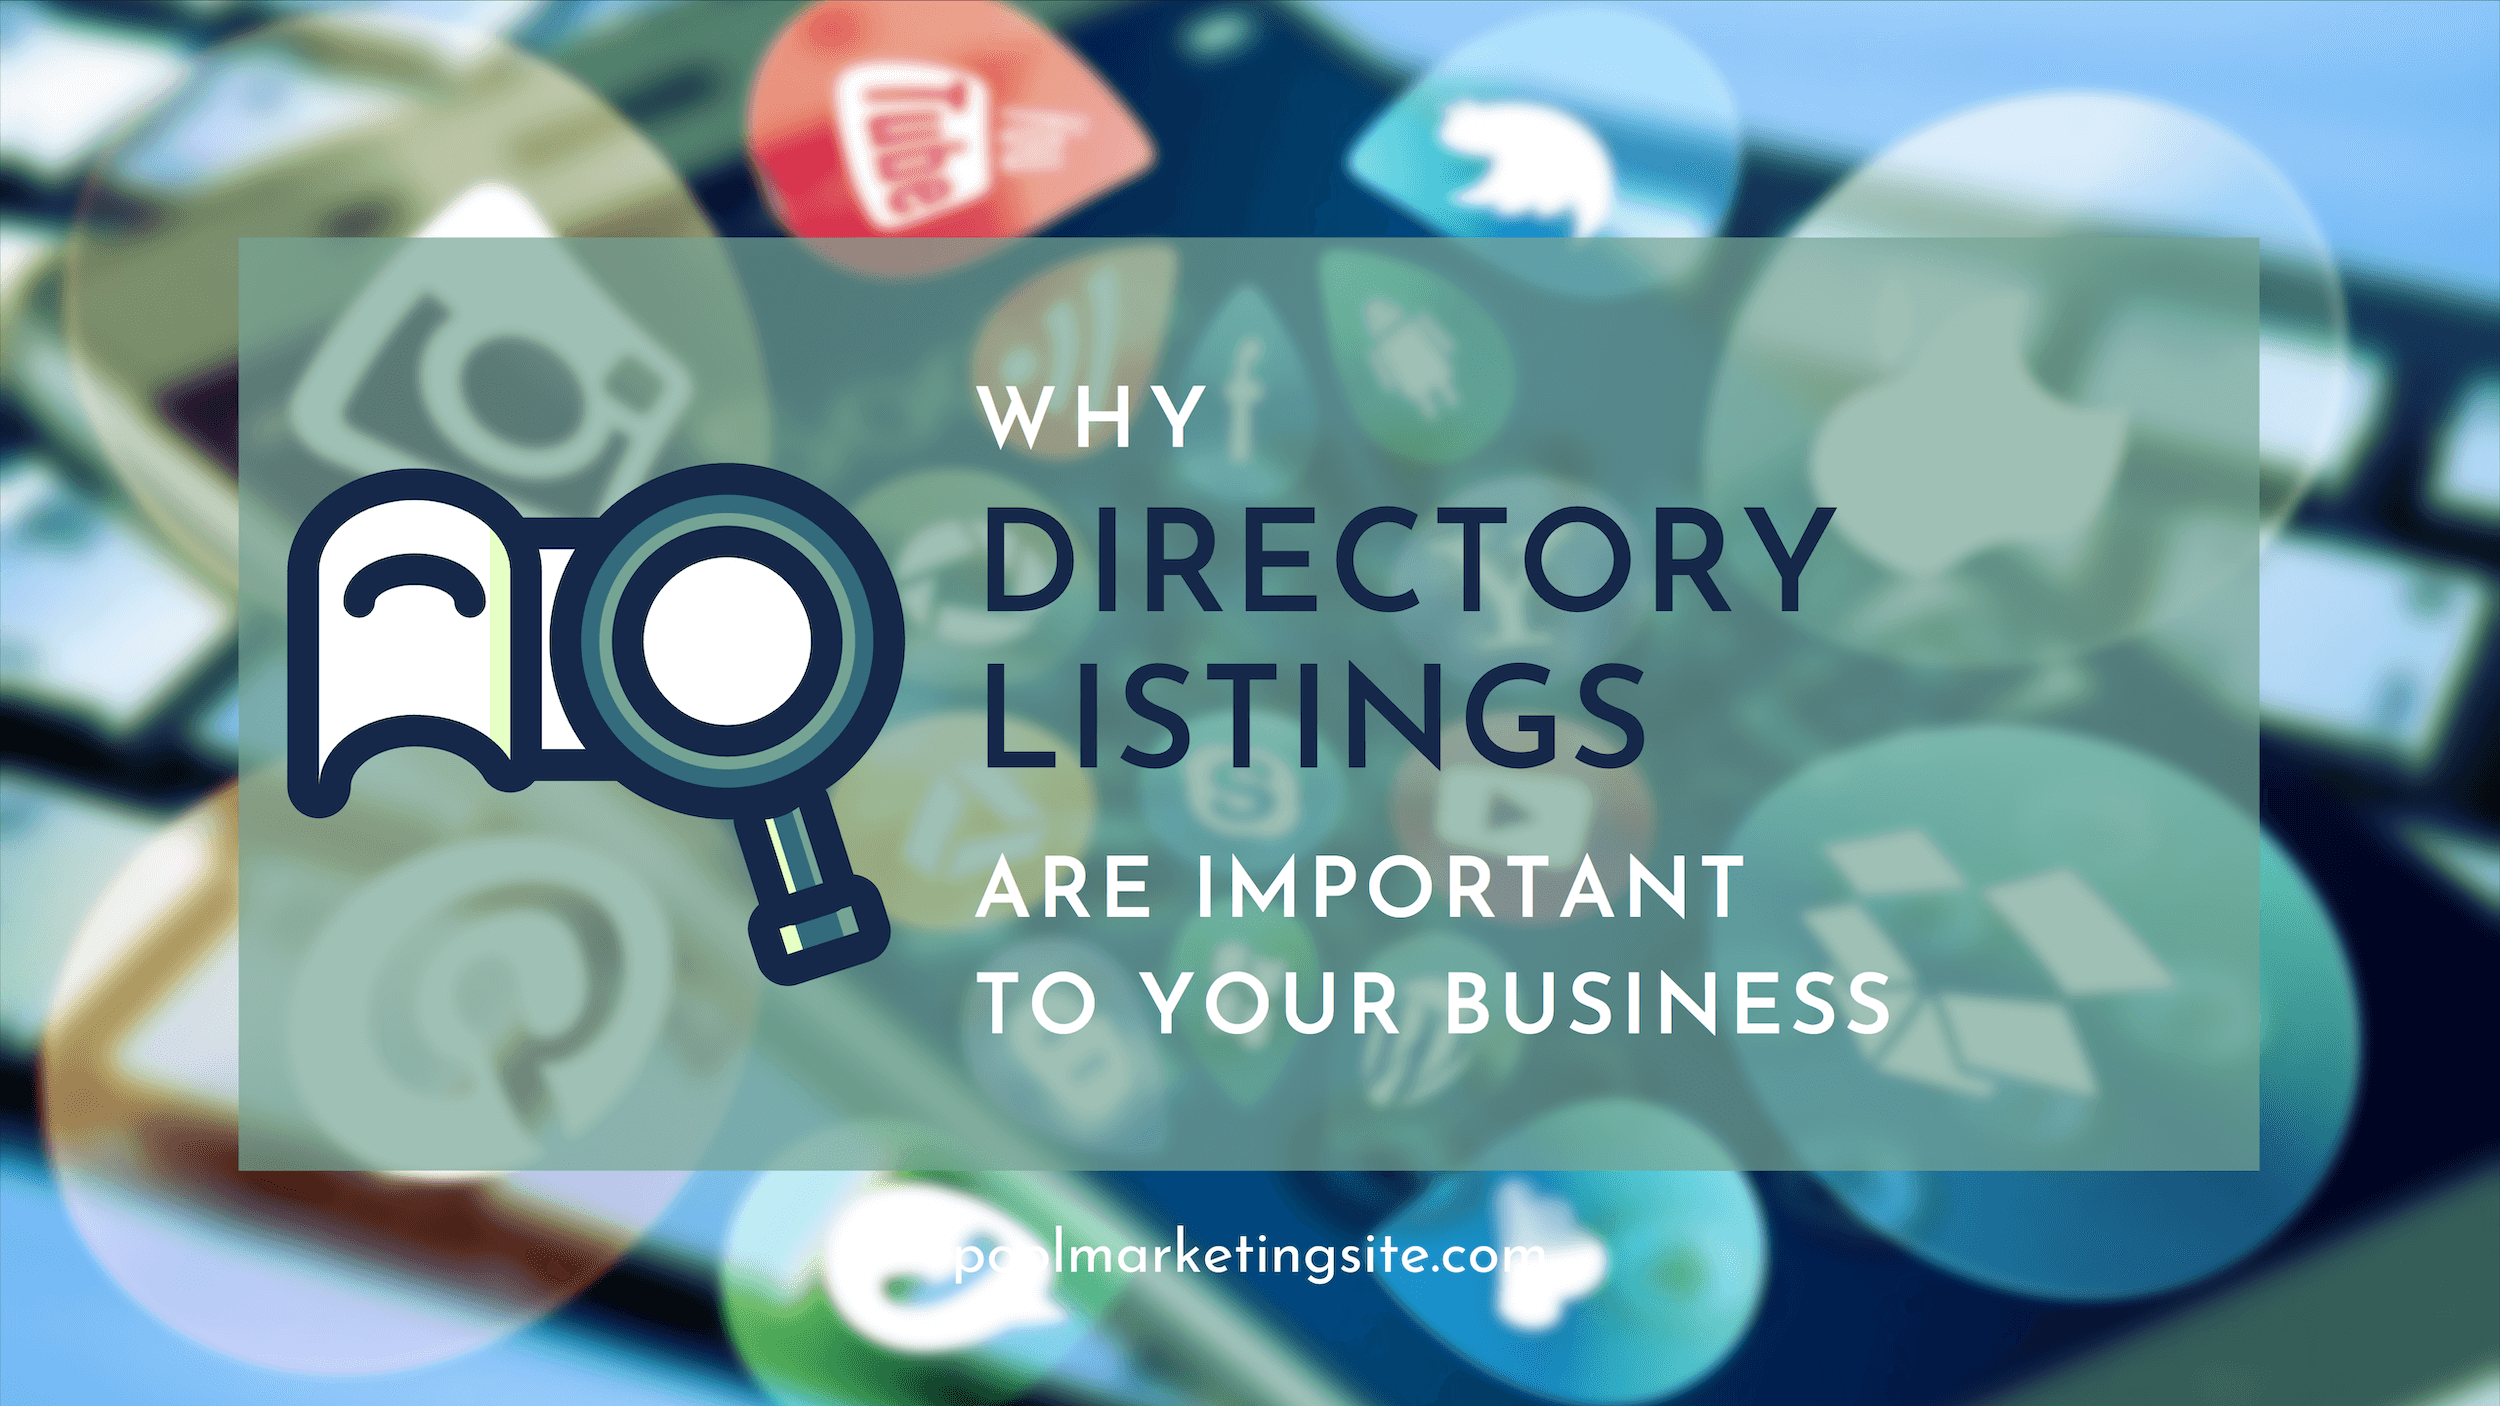 Why Directory Listings are Important to Your Business